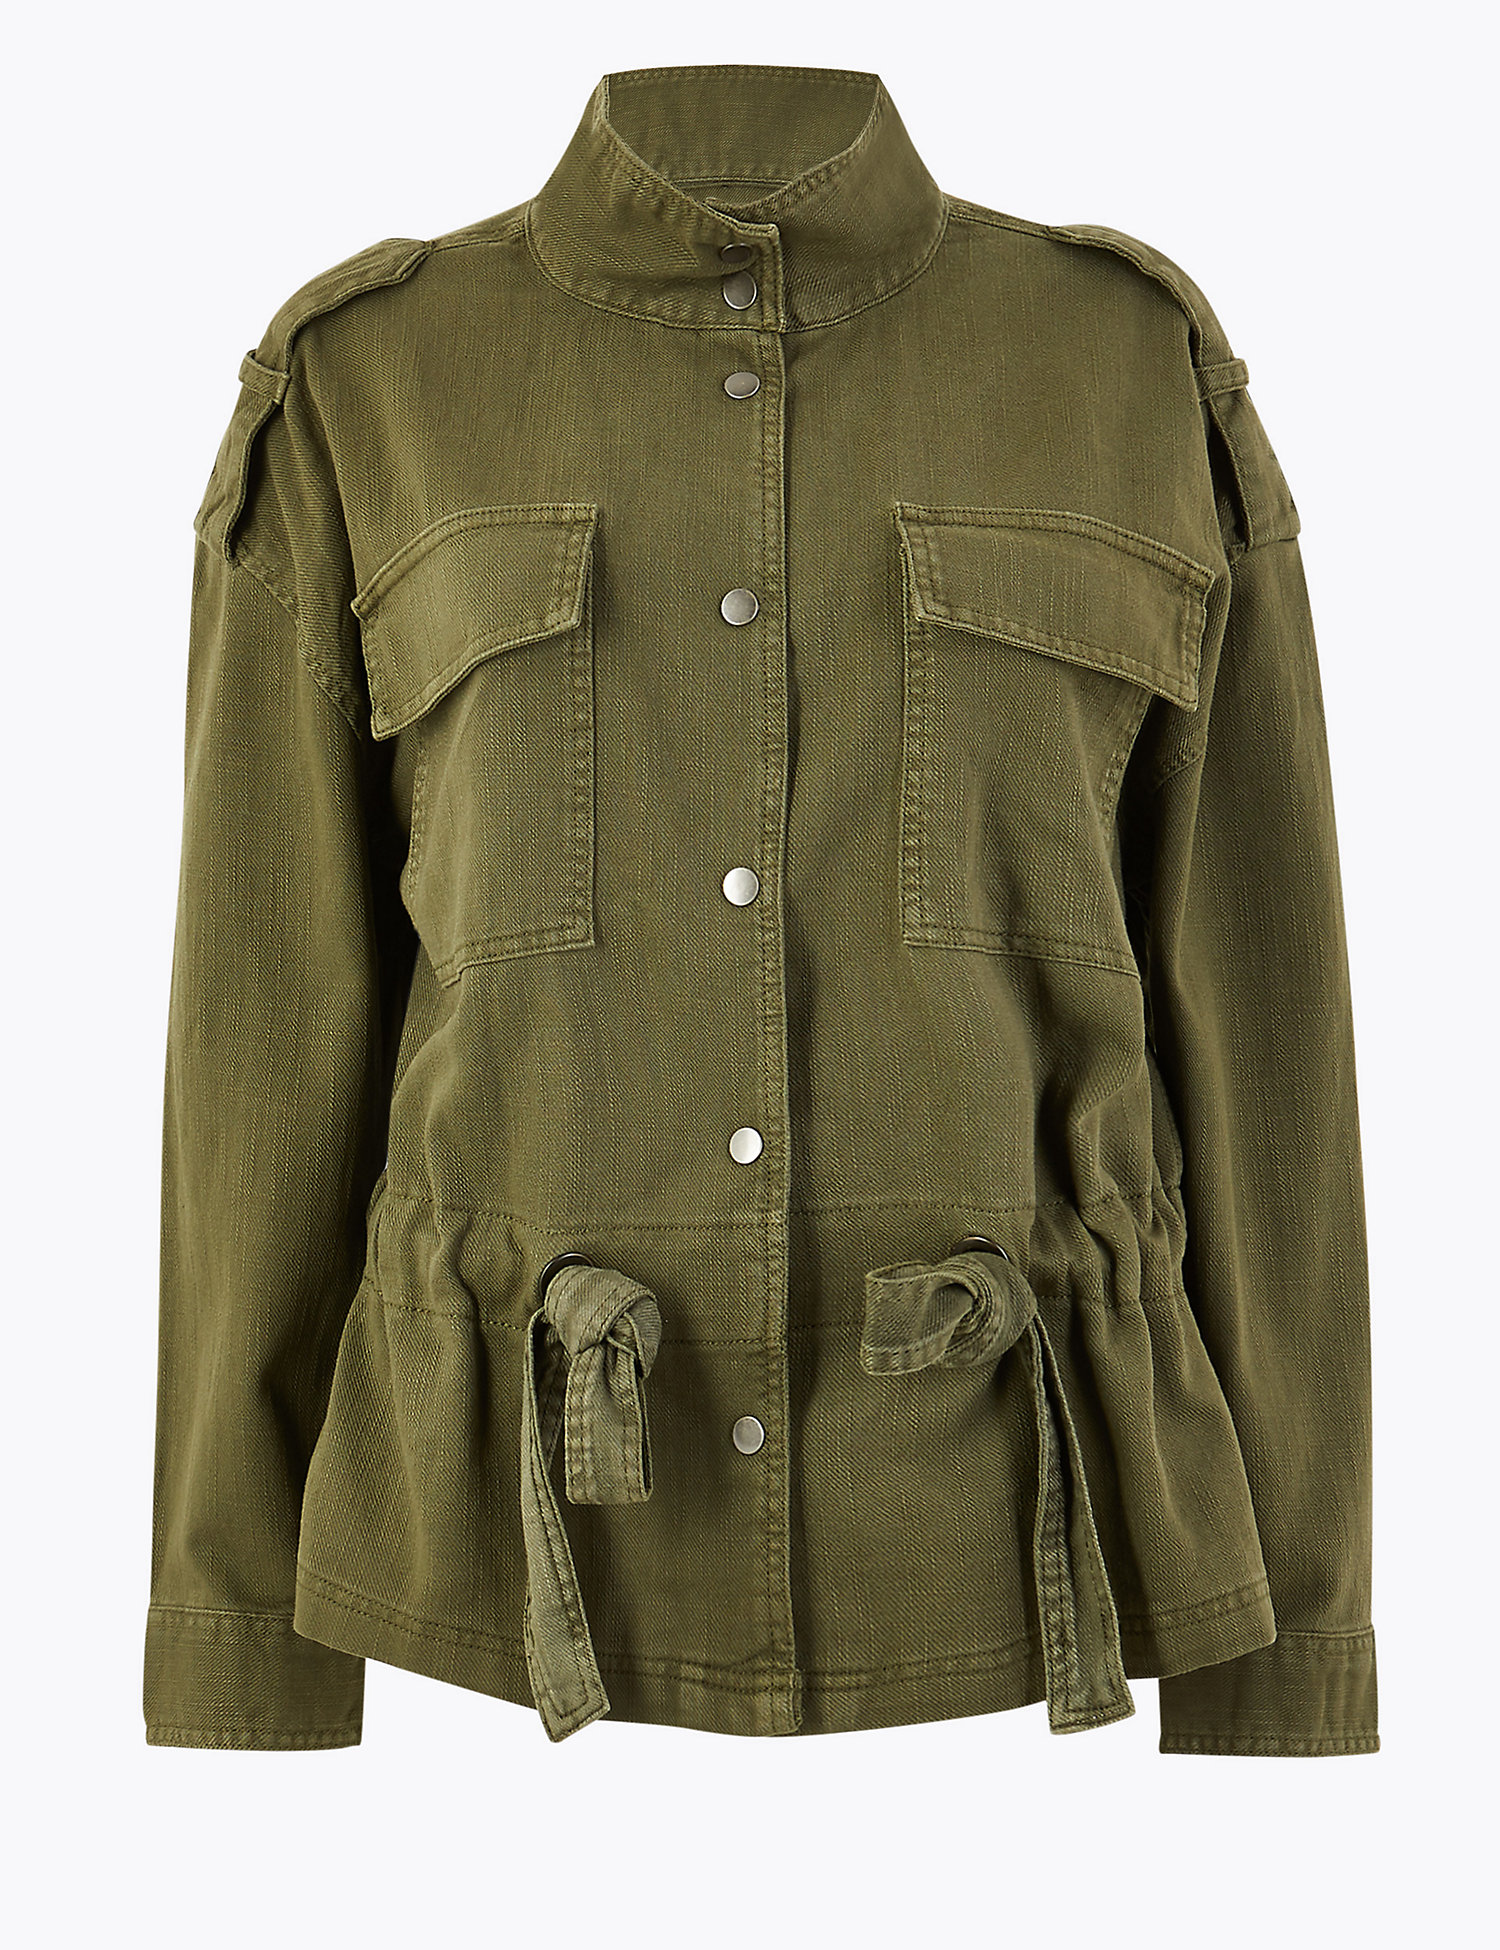 M&S Field Jacket £39.50